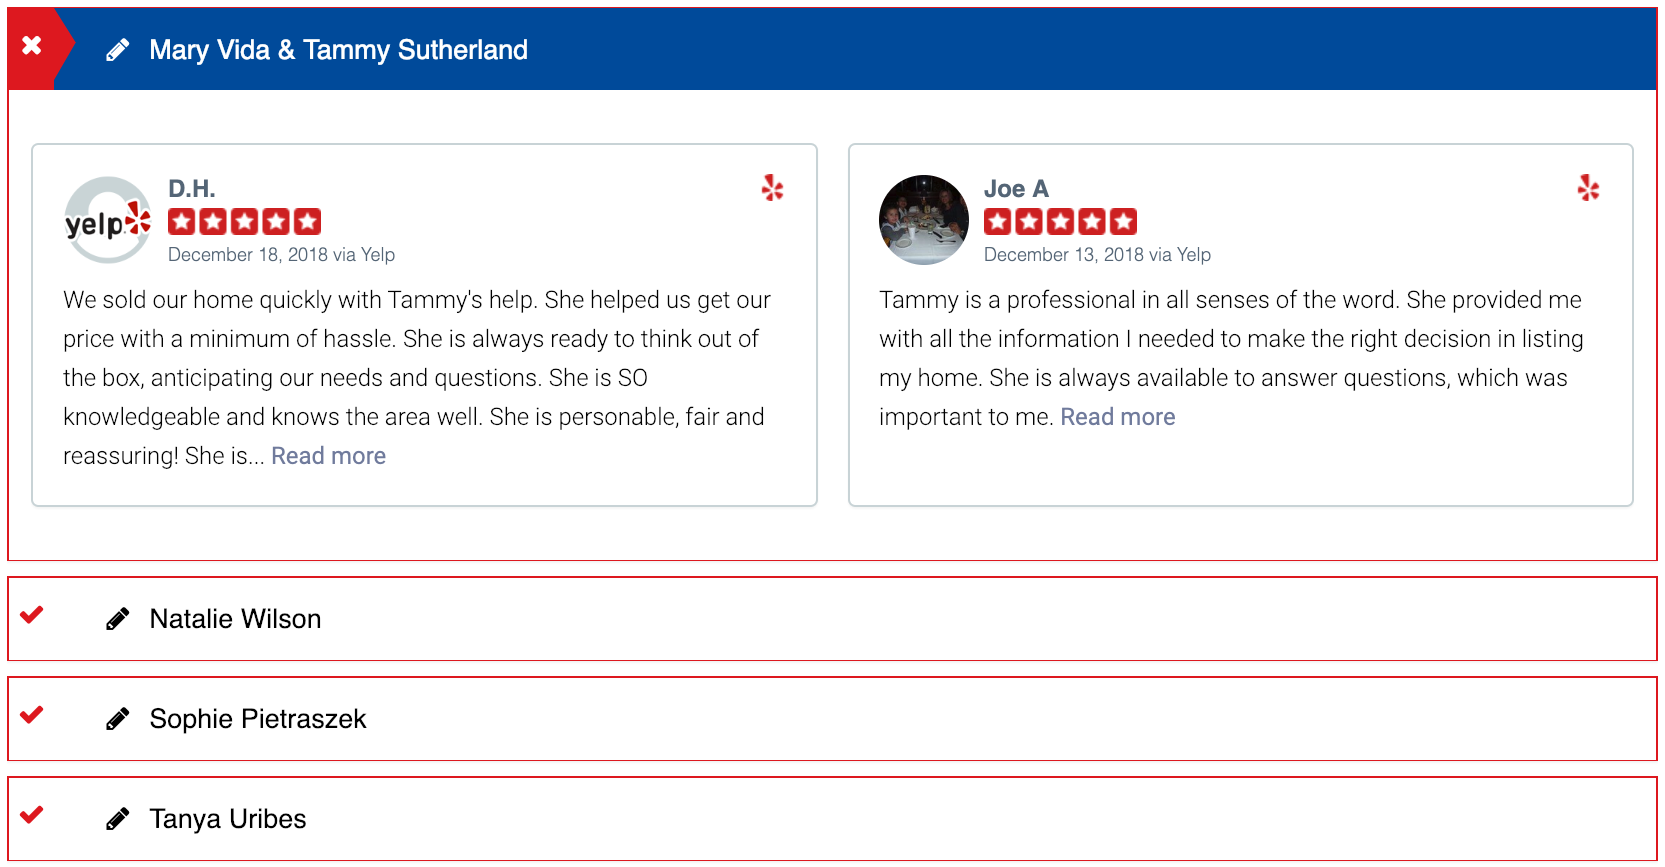 "Image: Accordion Tab open to ""Mary Via & Tammy Sutherland."" Yelp Review from D.H.: ""We sold our home quickly with Tammy's help. She helped us get our price with a minimum of hassle. She is always ready to think out of the box, anticipating our needs and questions. She is SO knowledgeable and knows the area well. She is personable, fair and reassuring!"" Yelp review from Jow A. ""Tammy is a professional in all senses of the word. She provided me with all the information I needed to make the right decision in listing my home. She is always available to answer questions, which was important to me."""